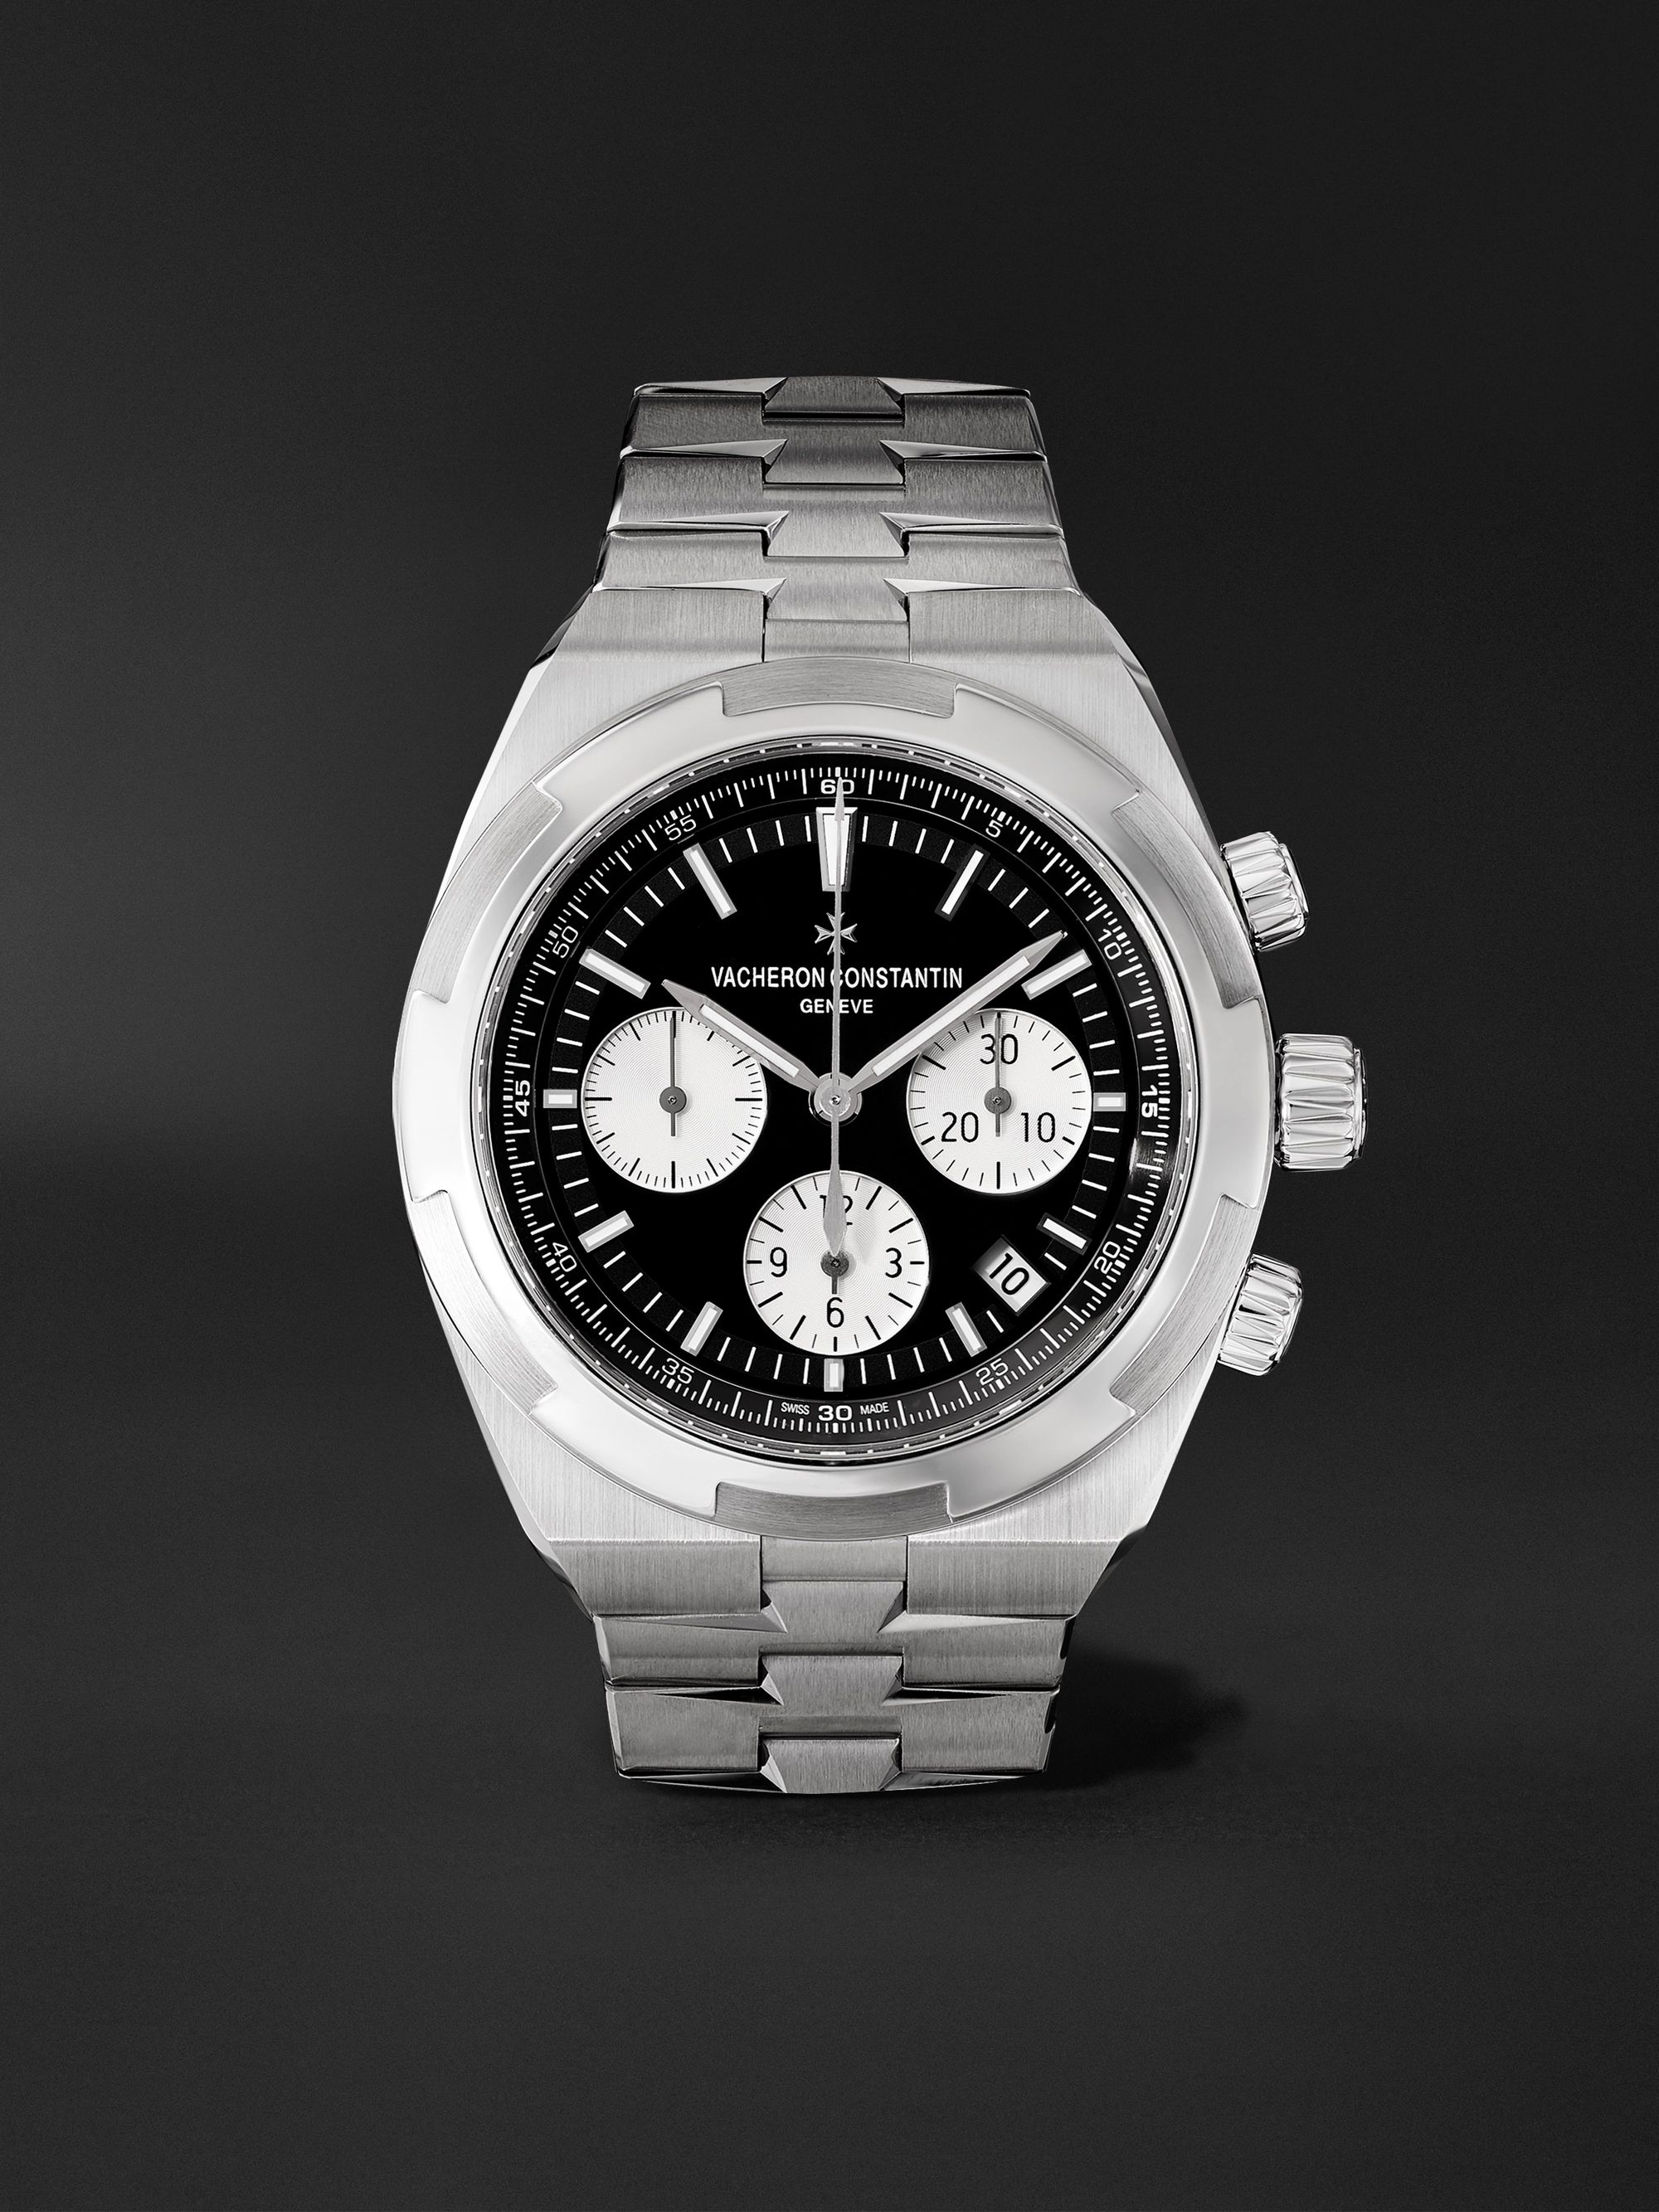 VACHERON CONSTANTIN Overseas Automatic Chronograph 42.5mm Stainless Steel Watch, Ref. No. 5500V/110A-B481